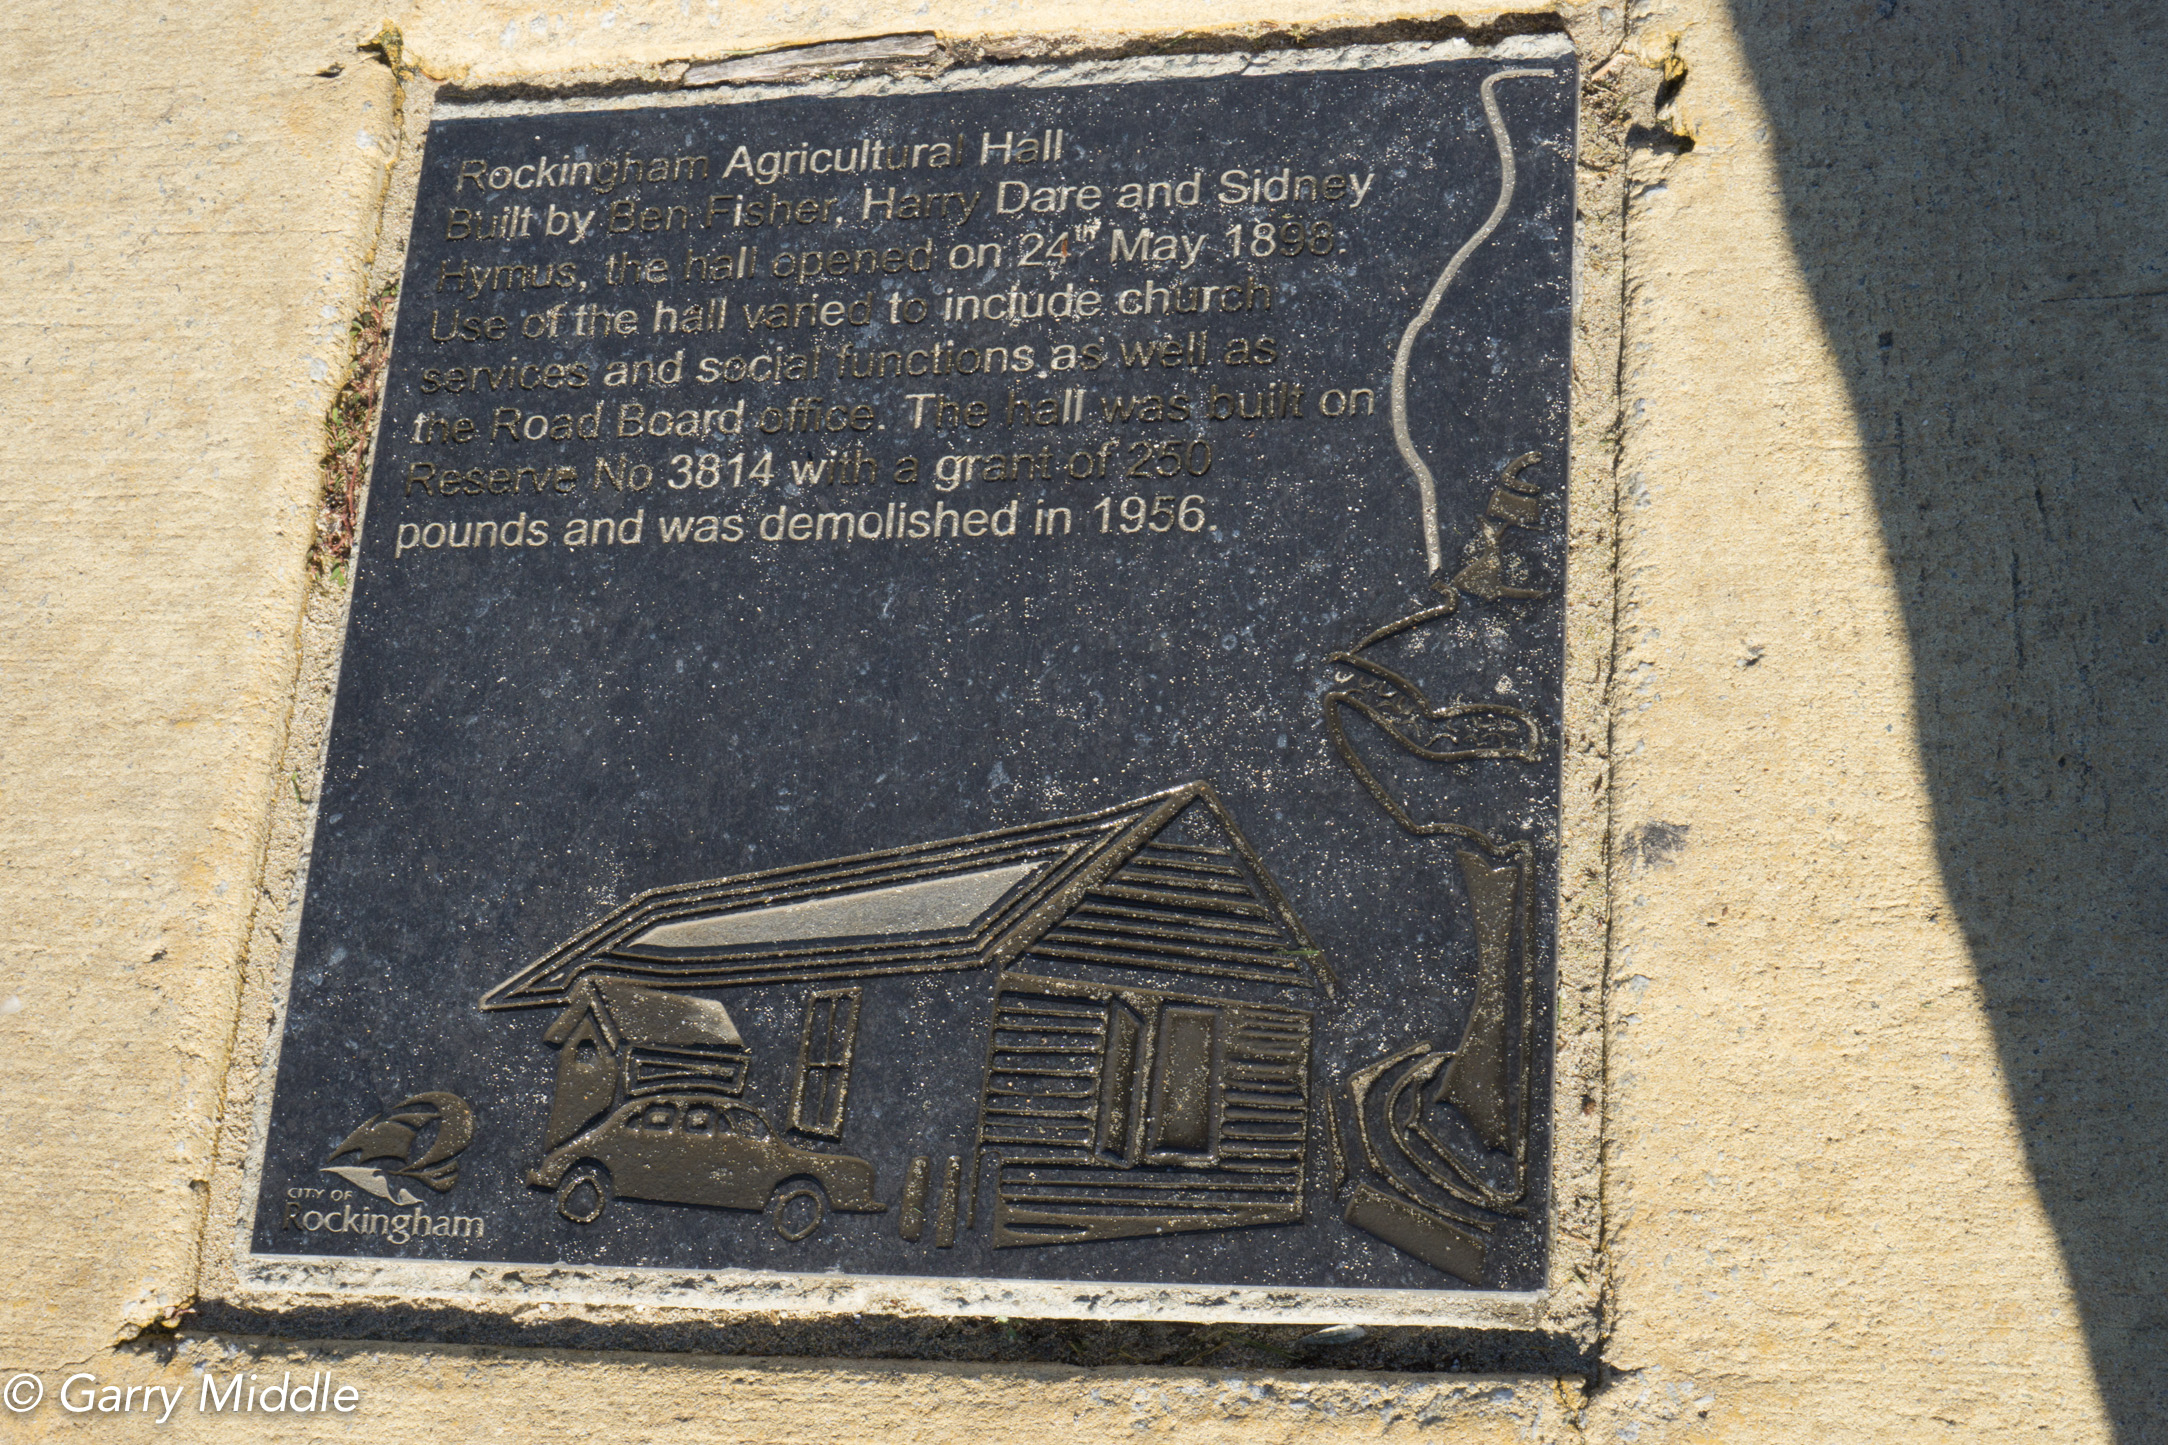 Plates 5: Historic Plaques in the path adjacent to the Rockingham Beach Foreshore